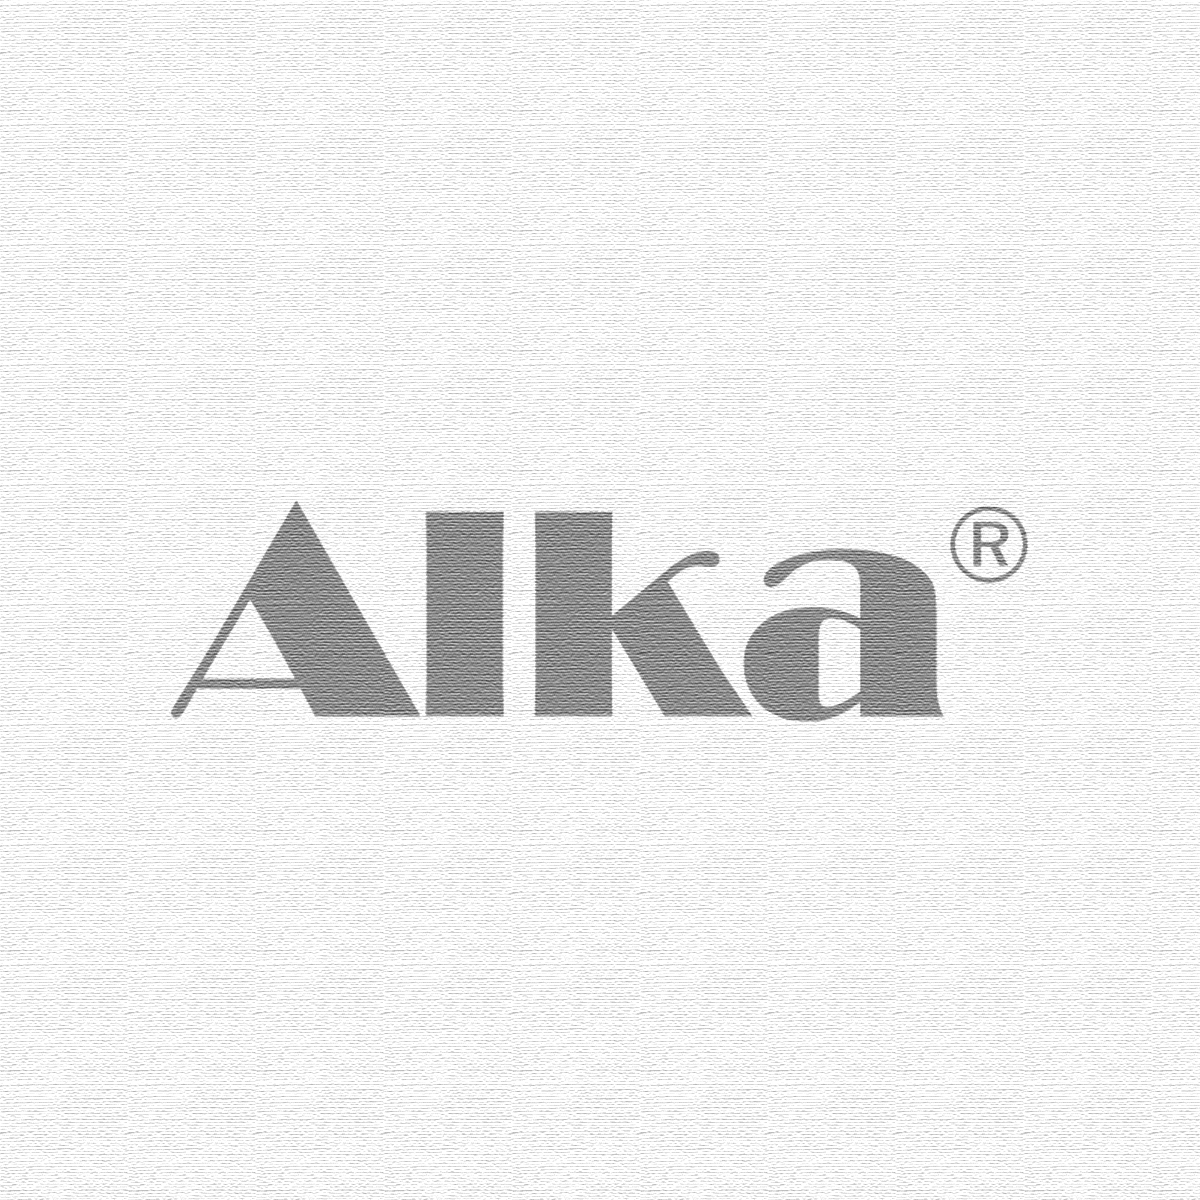 Alka® Creme - 60 ml - German Label